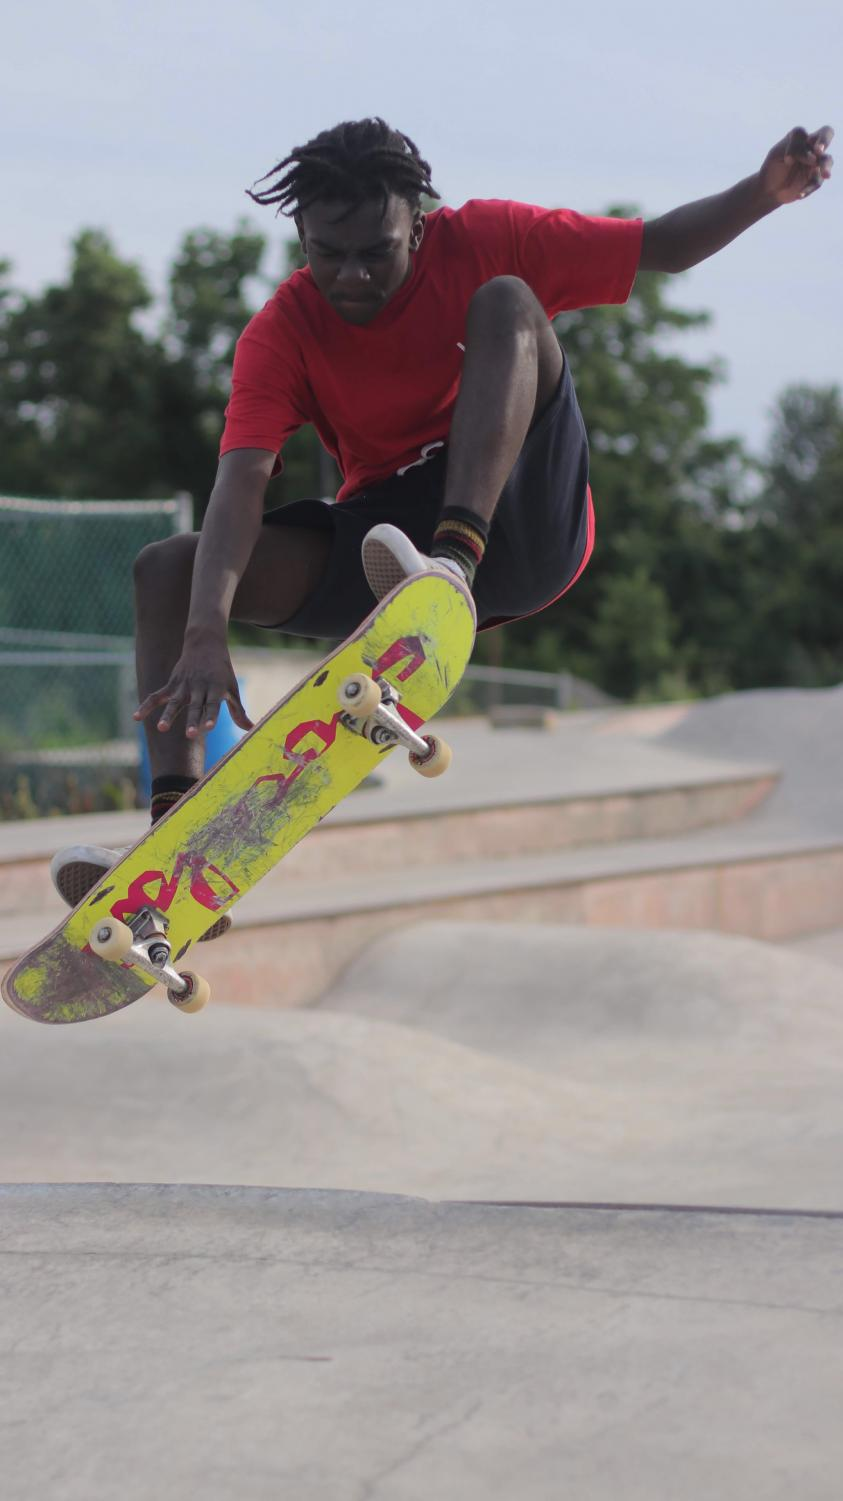 Dallastown senior Charles Asah, does an Indie grab off of a ramp at Reid Menzer. Asah is not letting recent violence keep him from skating at the park.